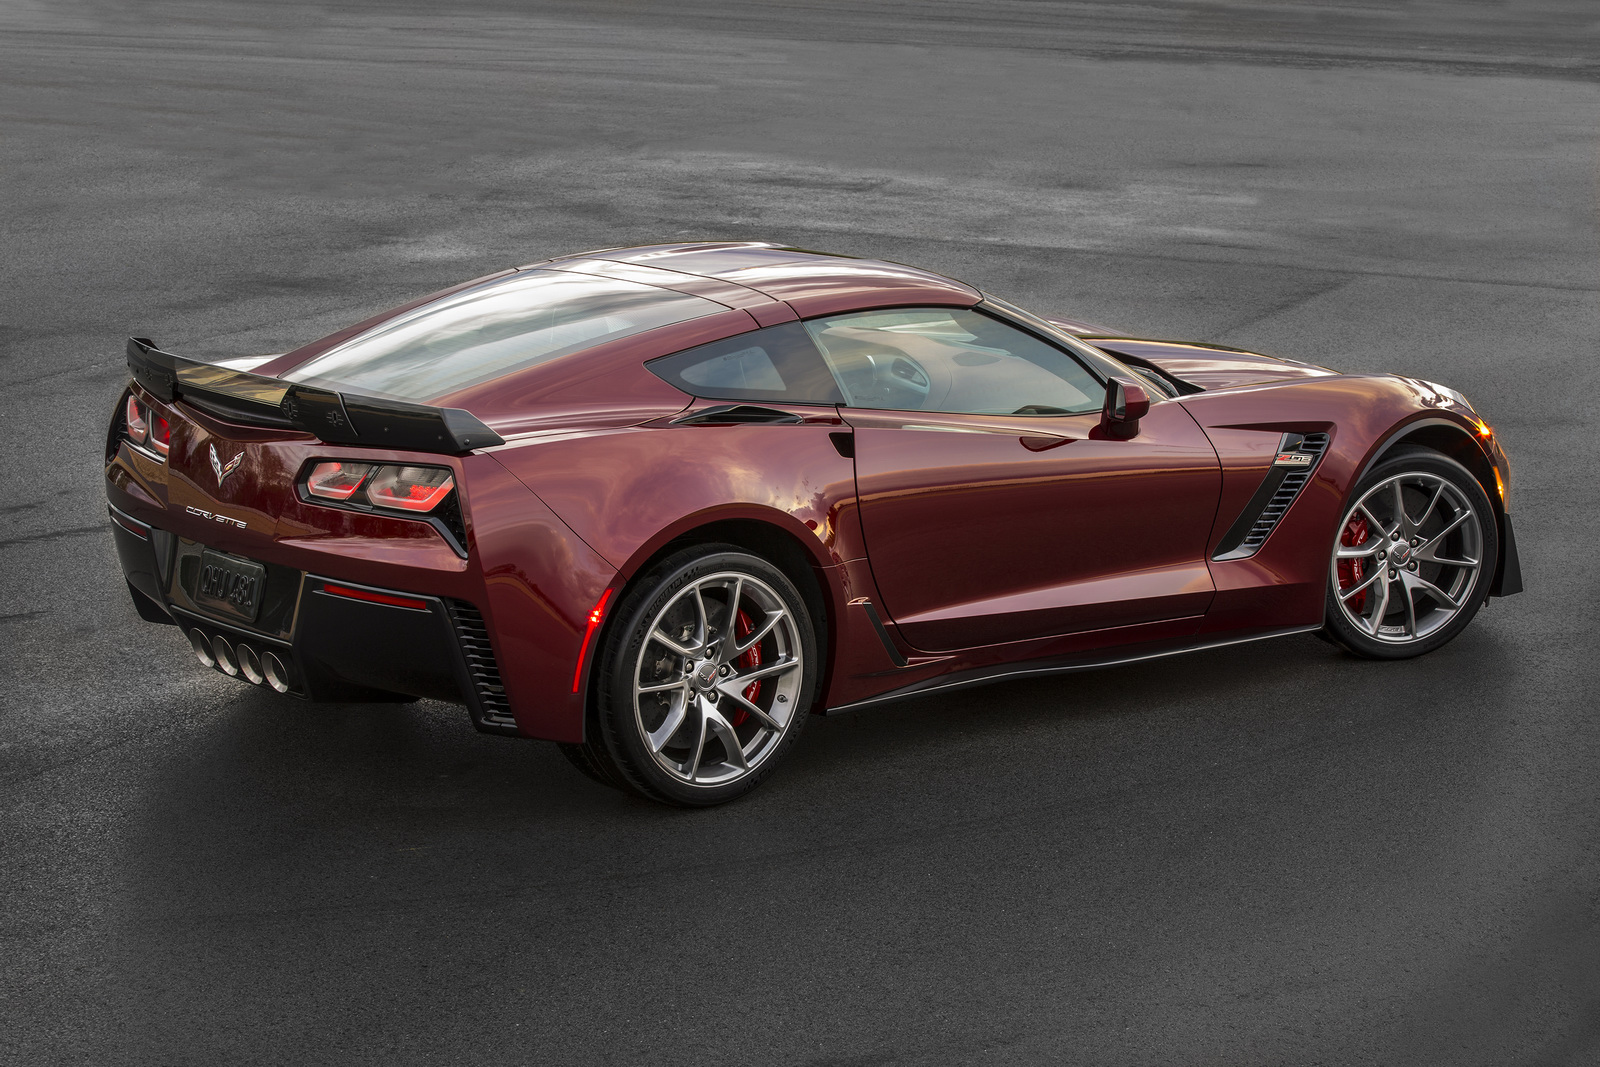 2018 Chevrolet Corvette C7 Stingray photo - 4